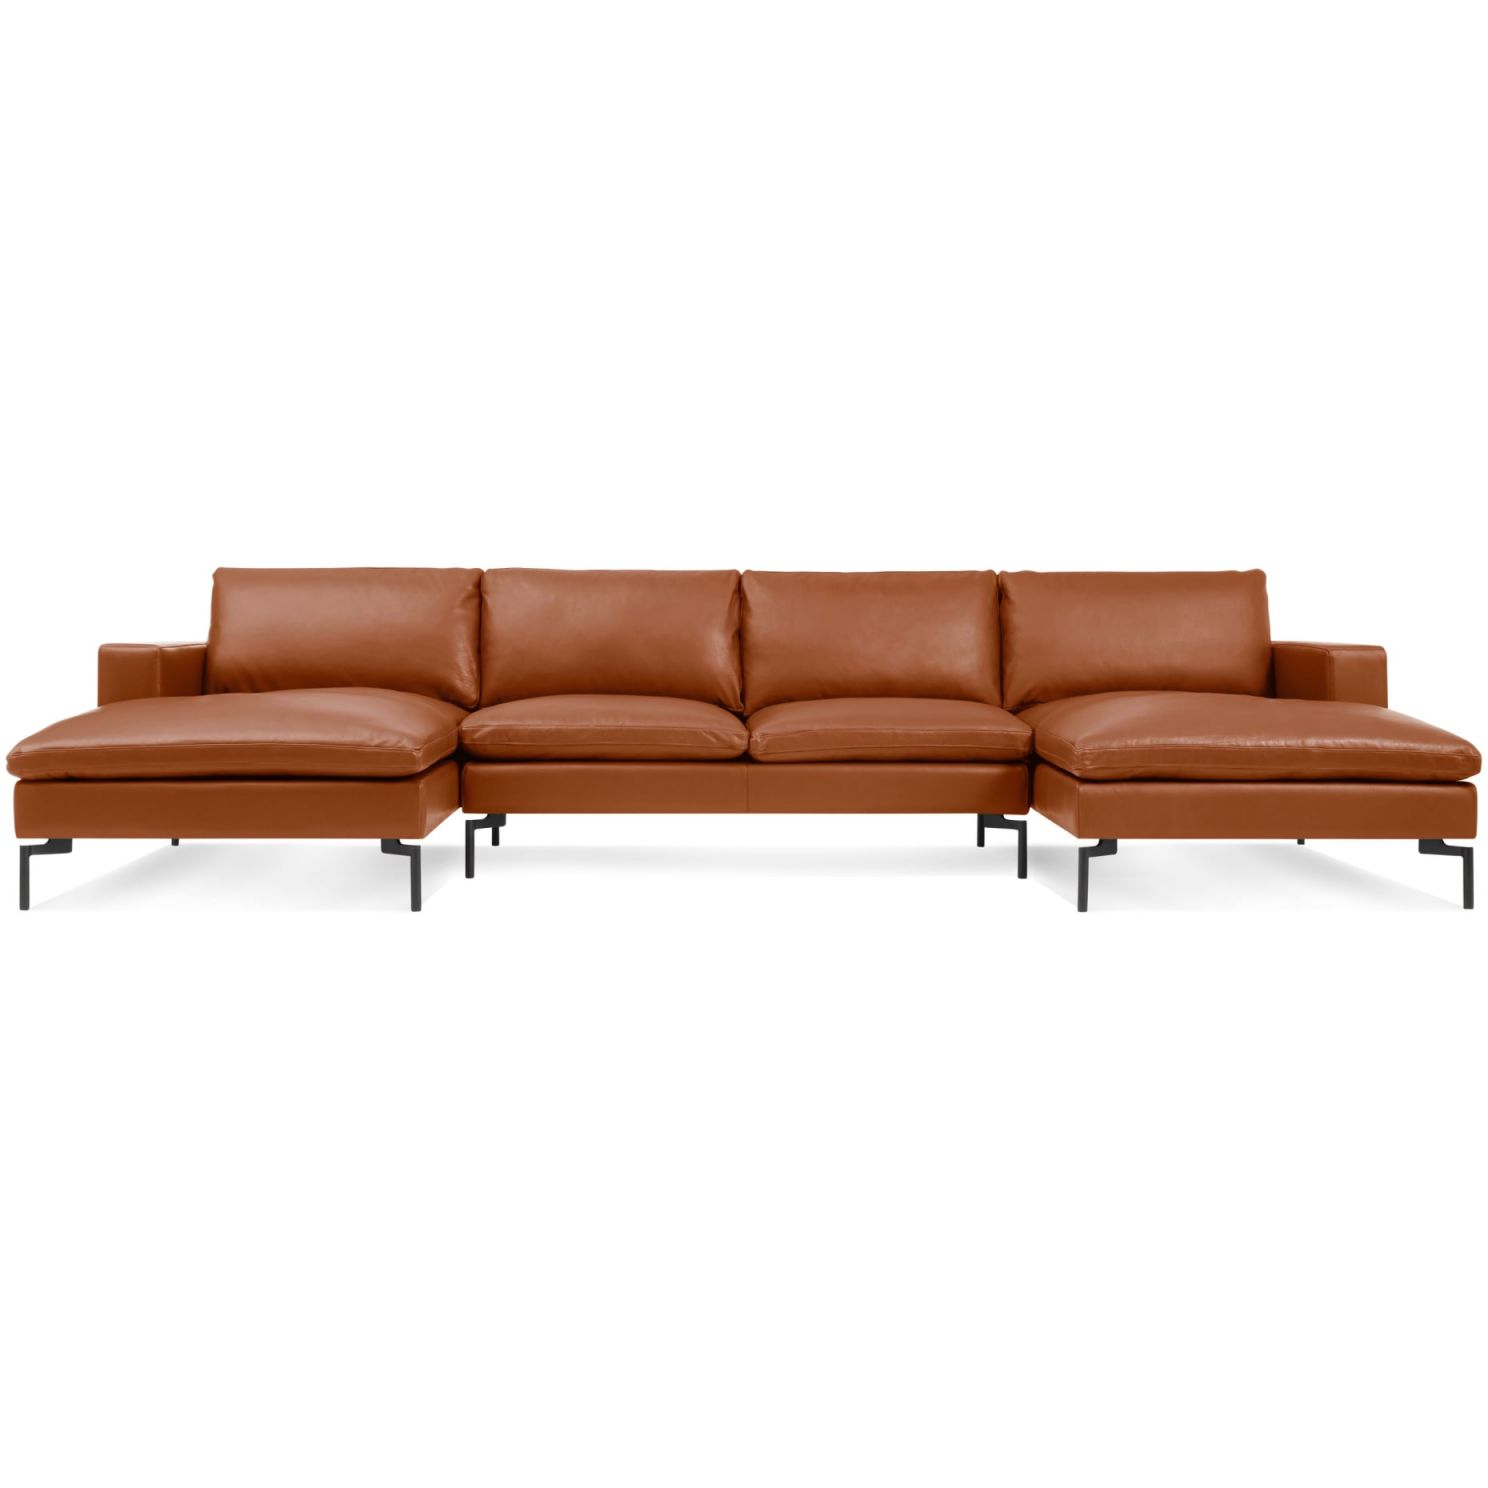 New Standard U-Shaped Leather Sectional Sofa | Blu Dot with regard to Best of Leather Sectional Sofa